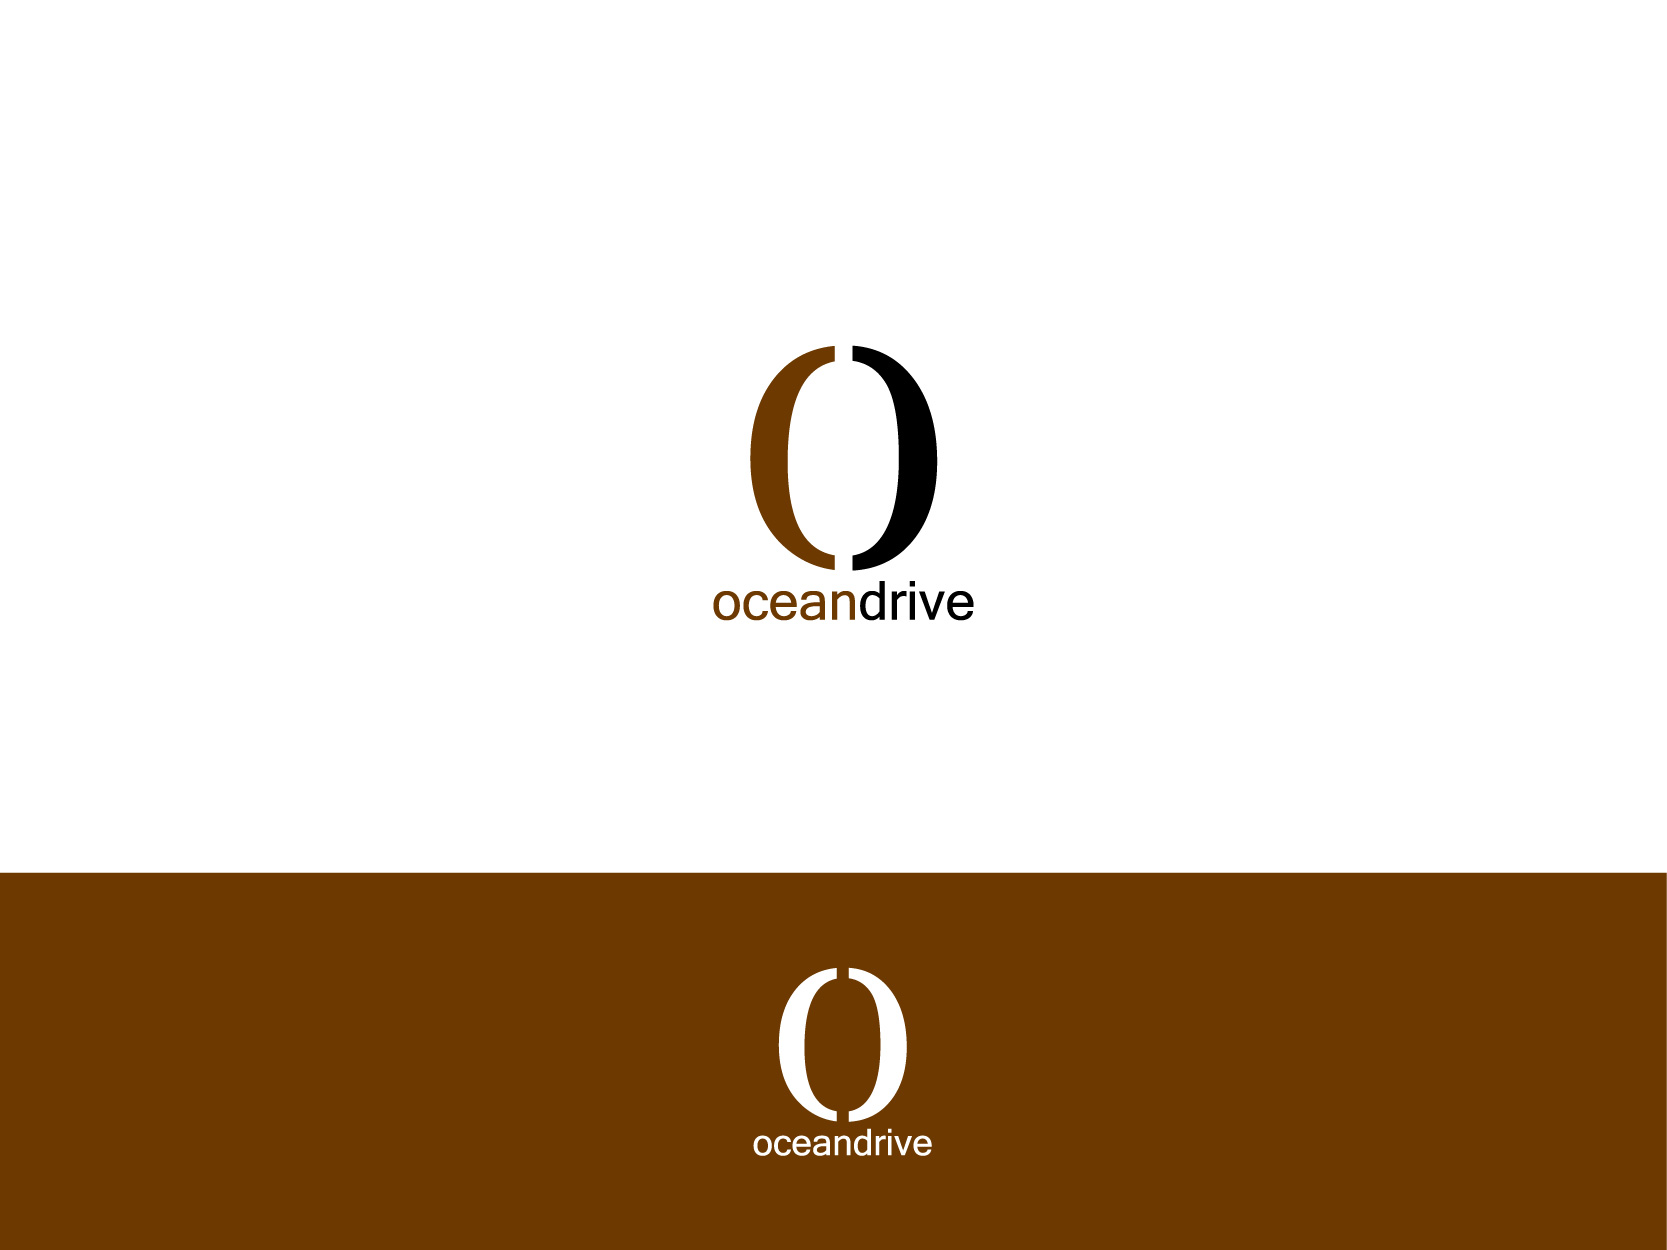 Logo Design by Osi Indra - Entry No. 16 in the Logo Design Contest Captivating Logo Design for Oceandrive Leather.